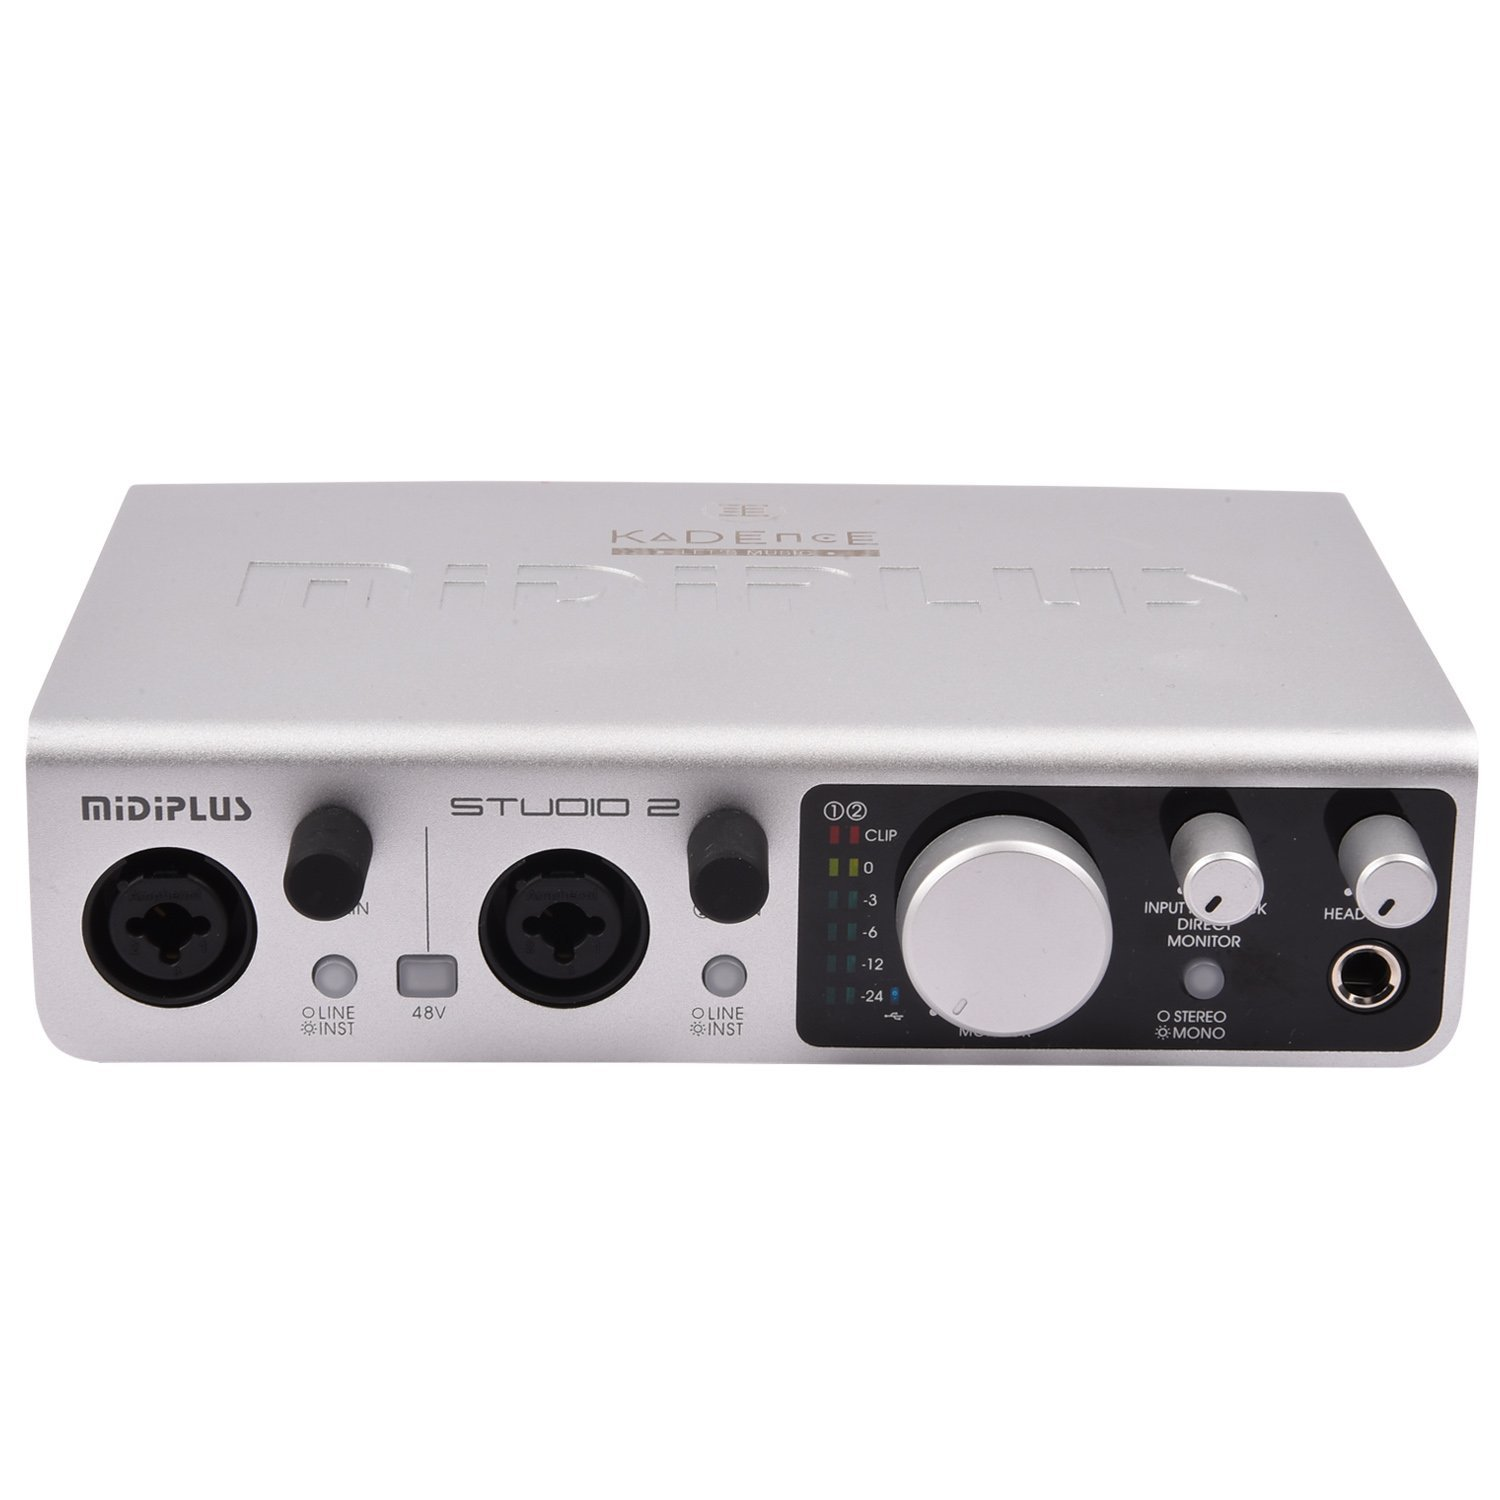 Kadence Midiplus Audio Interface-2 2